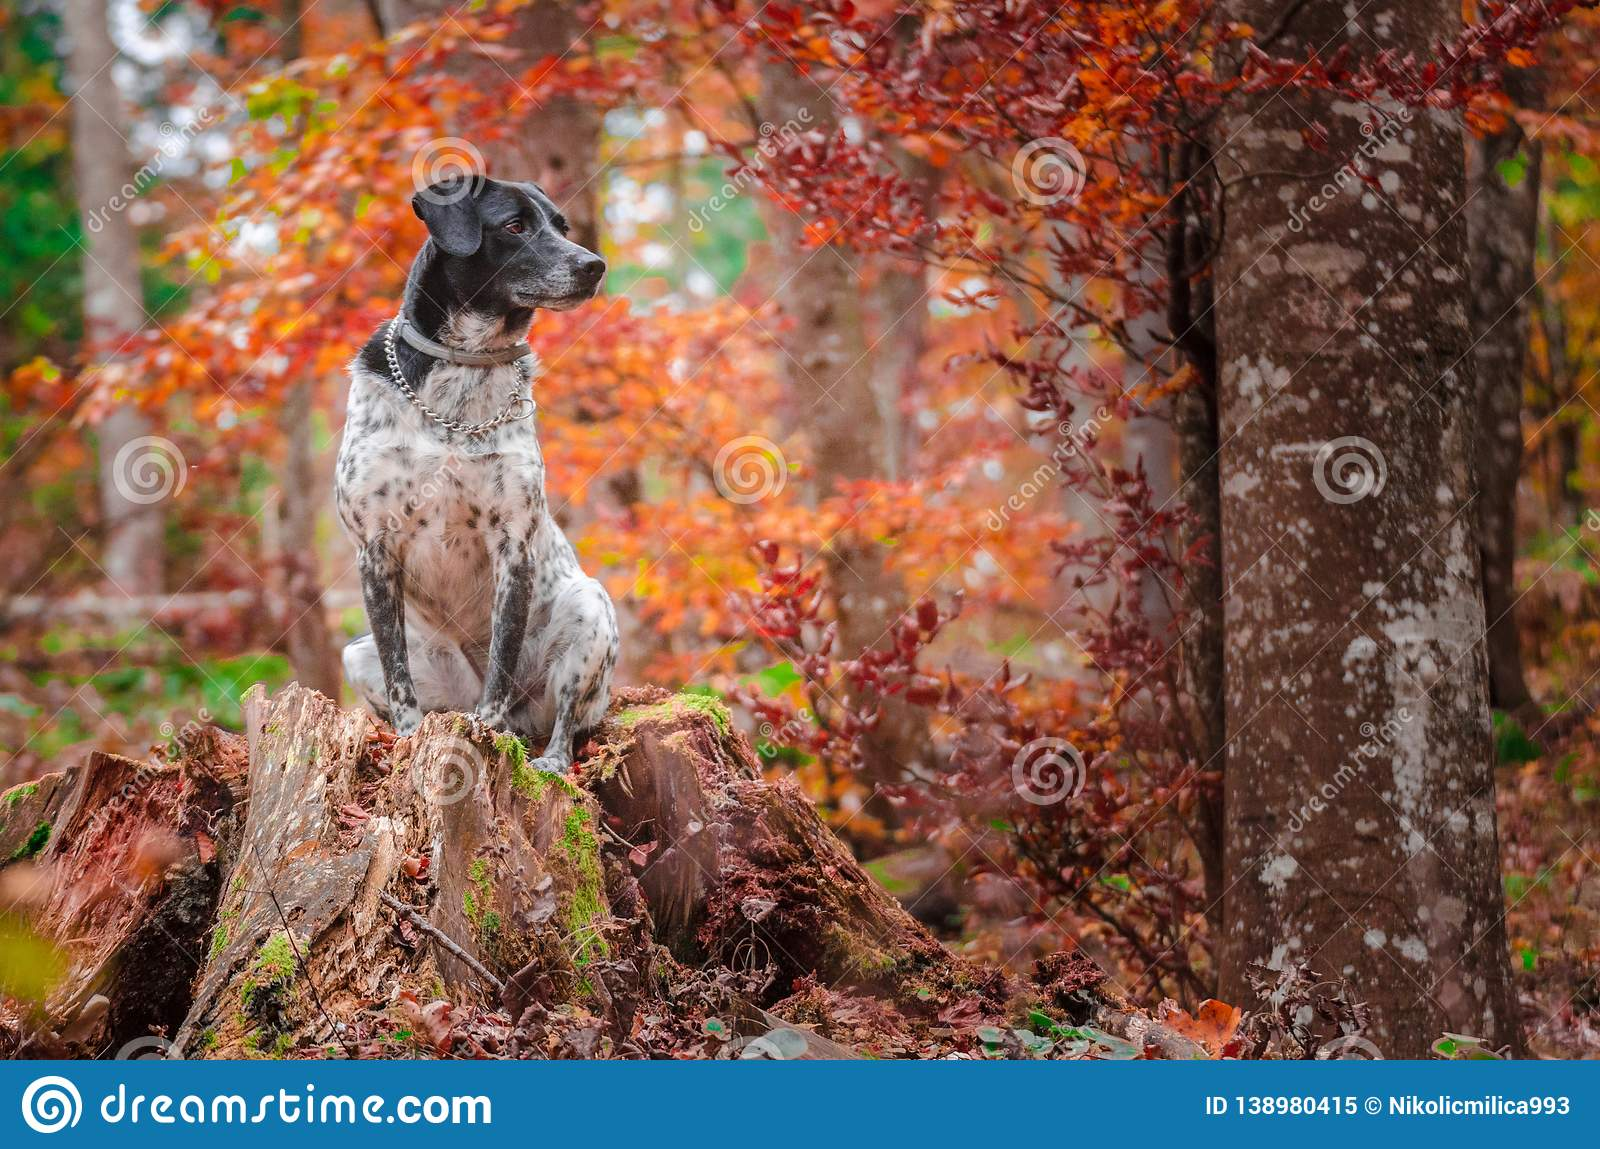 German hunting dog posing in the colorful fall scenery